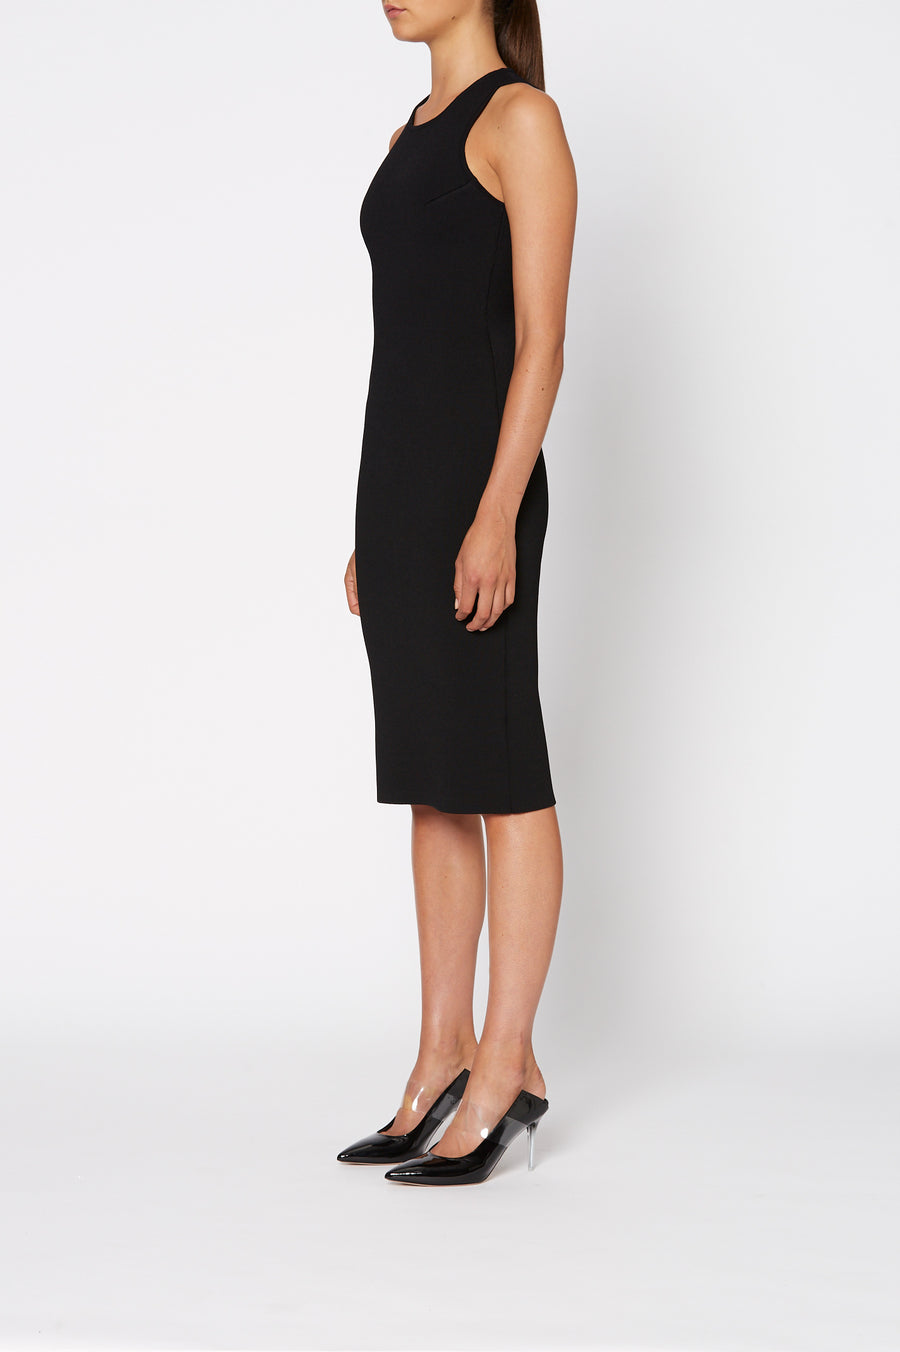 Crepe Knit Scuba Dress, short sleeve, crew neck, fits and flatters each individual's silhouette, color Black